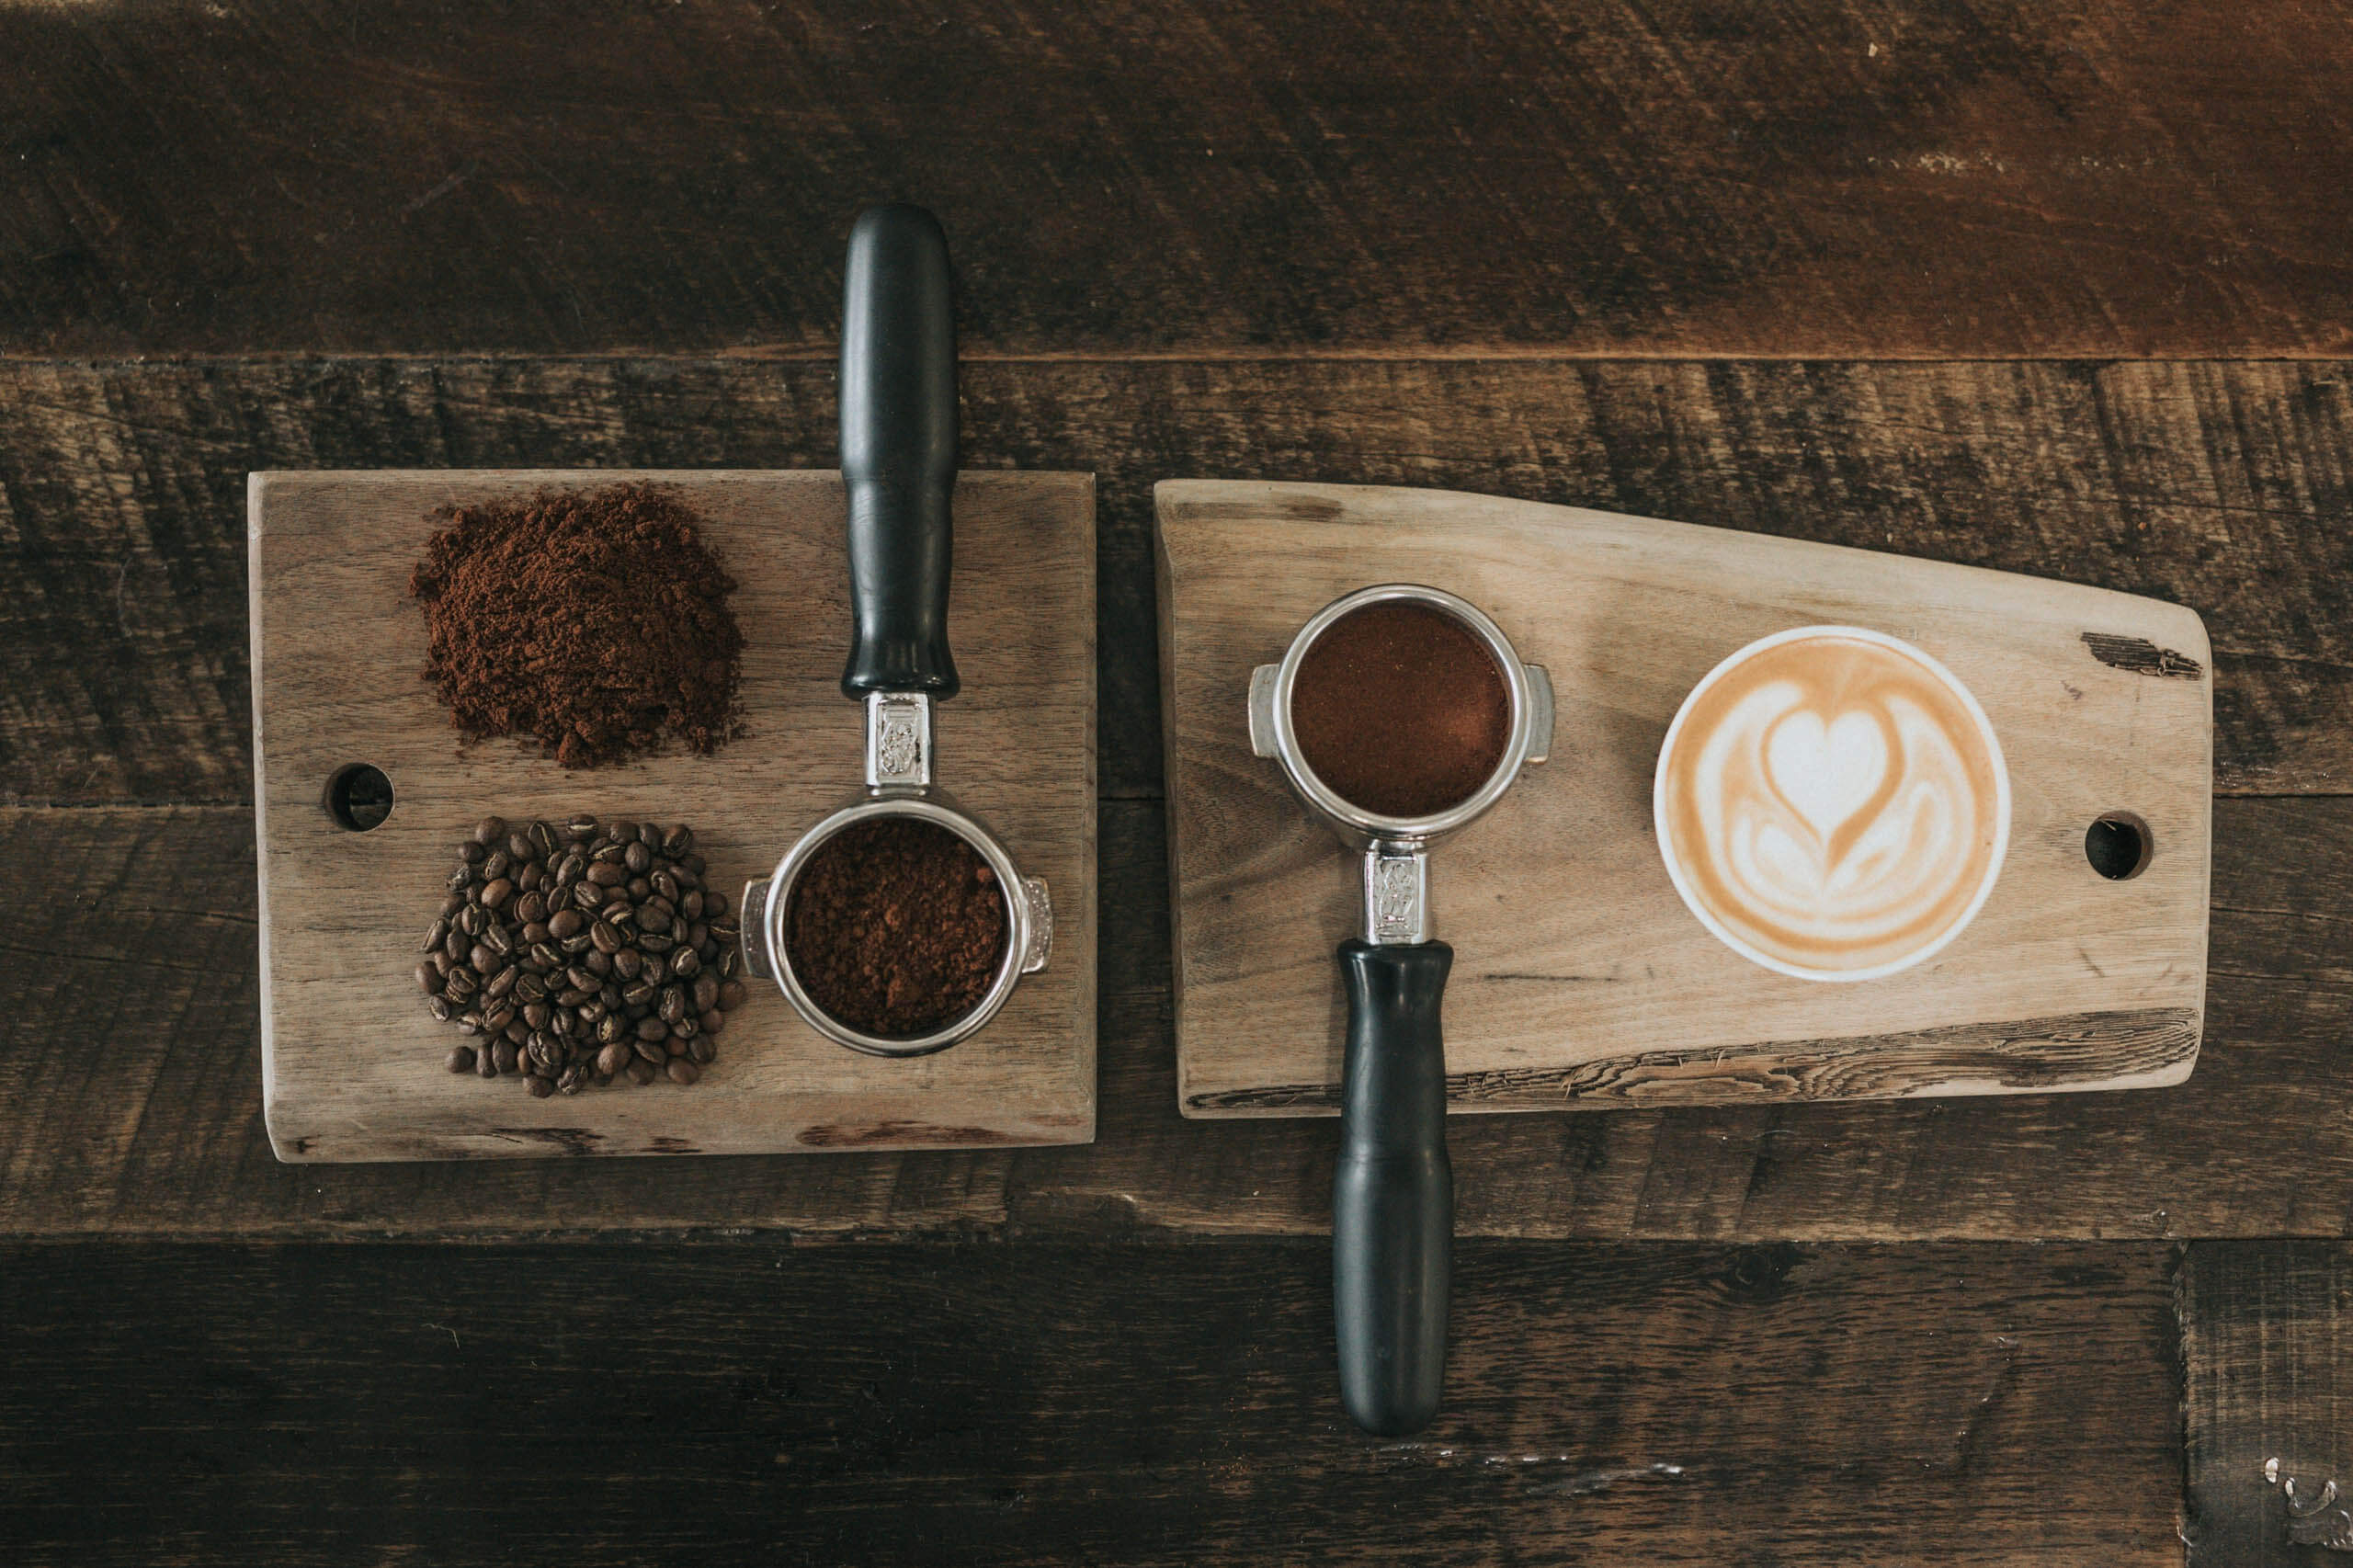 Aerial view of coffee. Photo by Nathan Dumlao on Unsplash